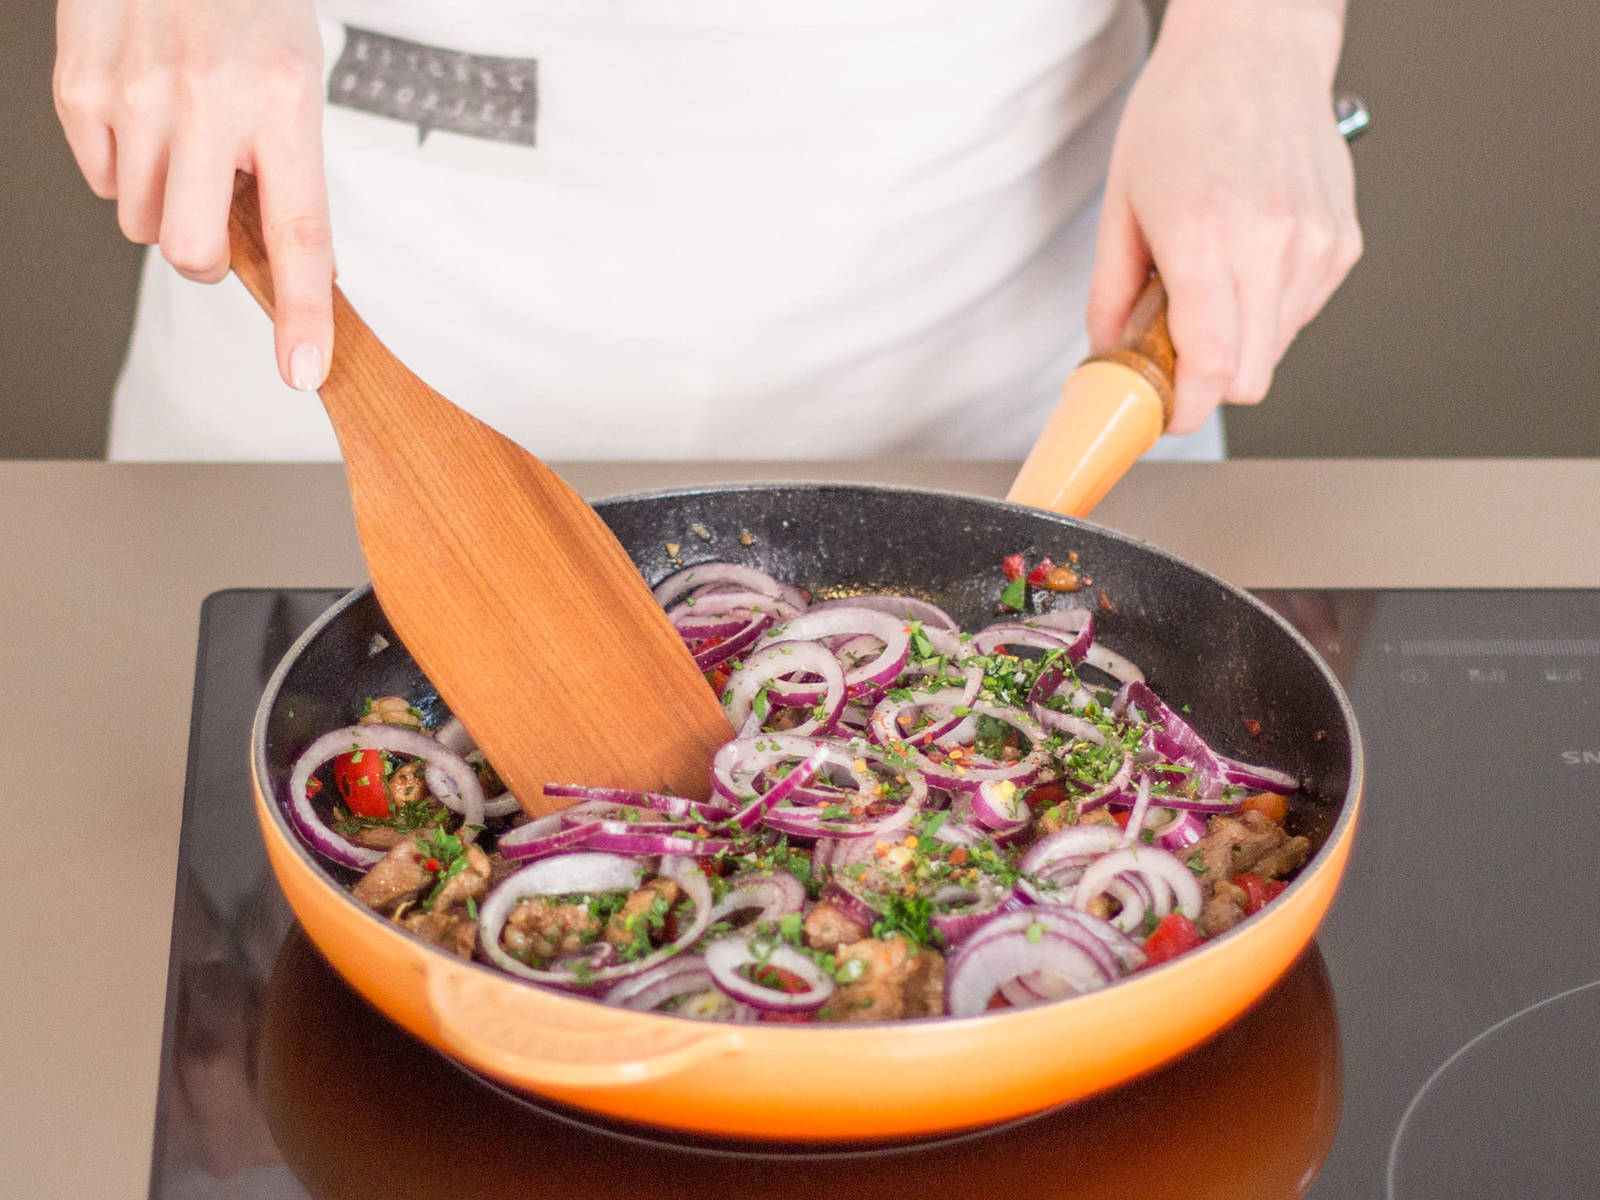 In a large frying pan, sauté meat in some vegetable oil over medium heat for approximately 3 – 4 min. Then, add chili and rest of the garlic and continue to cook for another 1 – 2 min. Finally, add onion and bell pepper, stir well to combine, and cook for another 2 – 3 min. Remove from heat and season to taste with salt, pepper, and paprika powder. Garnish with oregano and serve with tzatziki on the side. Enjoy!